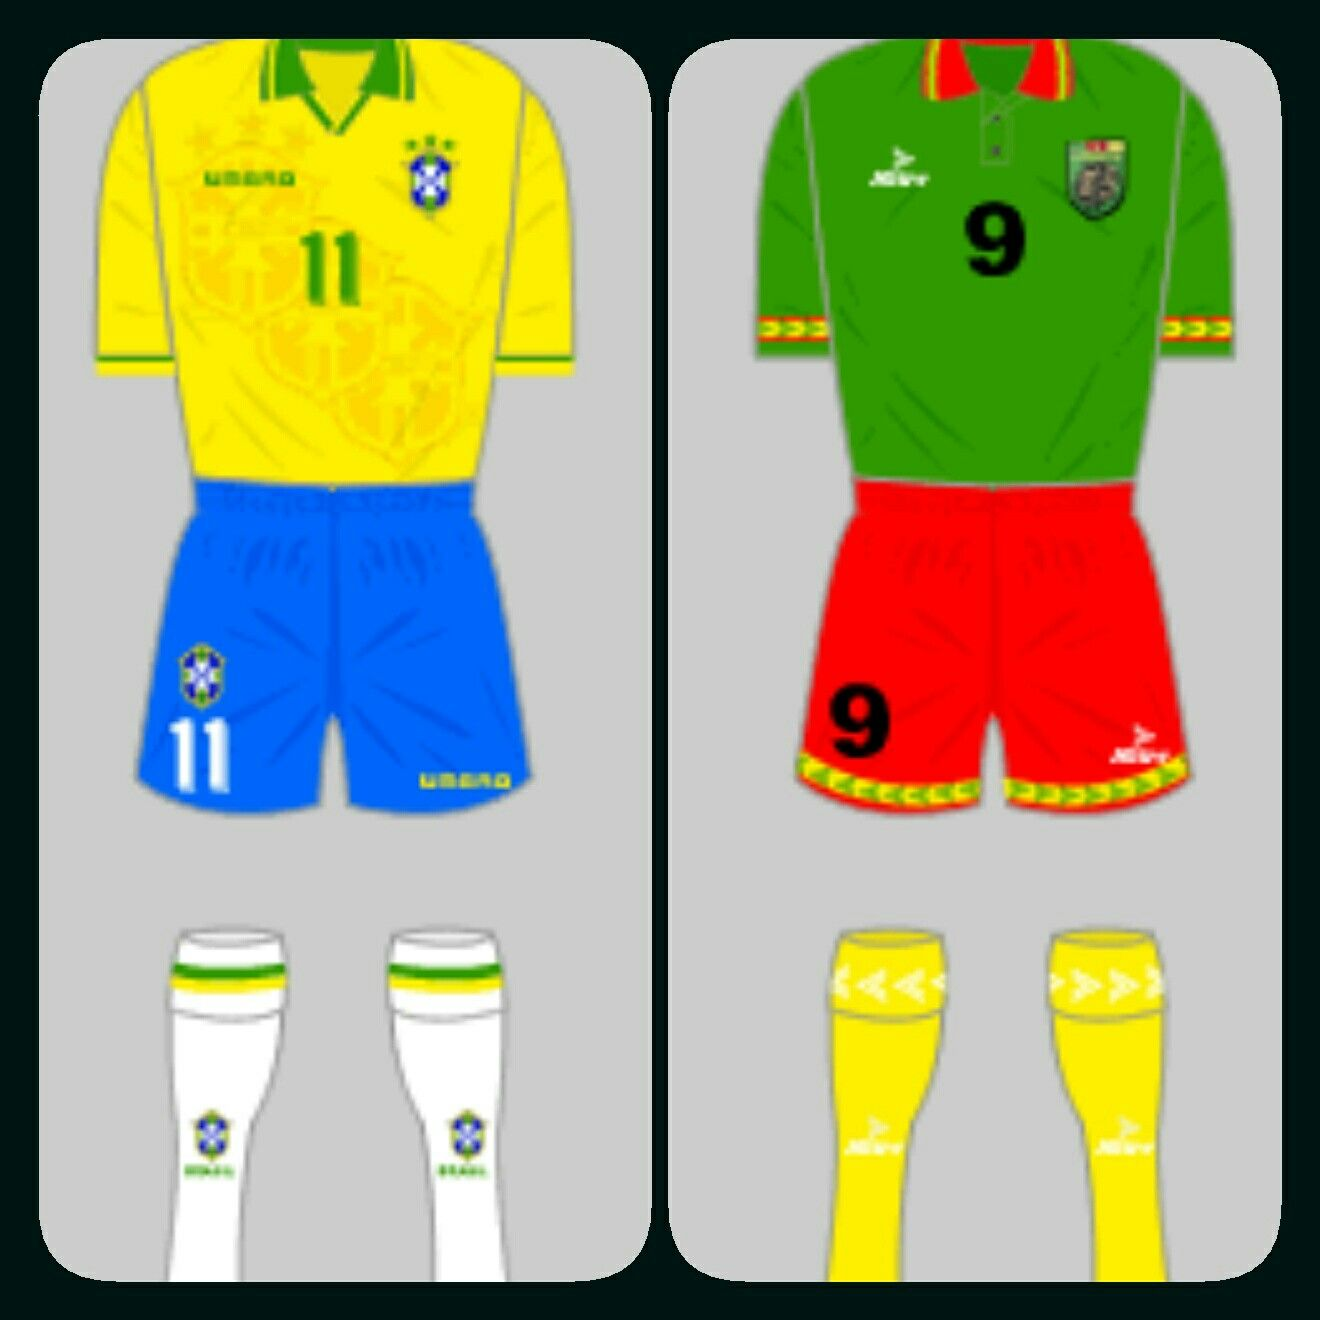 Brazil 3 Cameroon 0 in 1994 at San Francisco. Brazil make the next phase after this win in Group B #WorldCupFinals